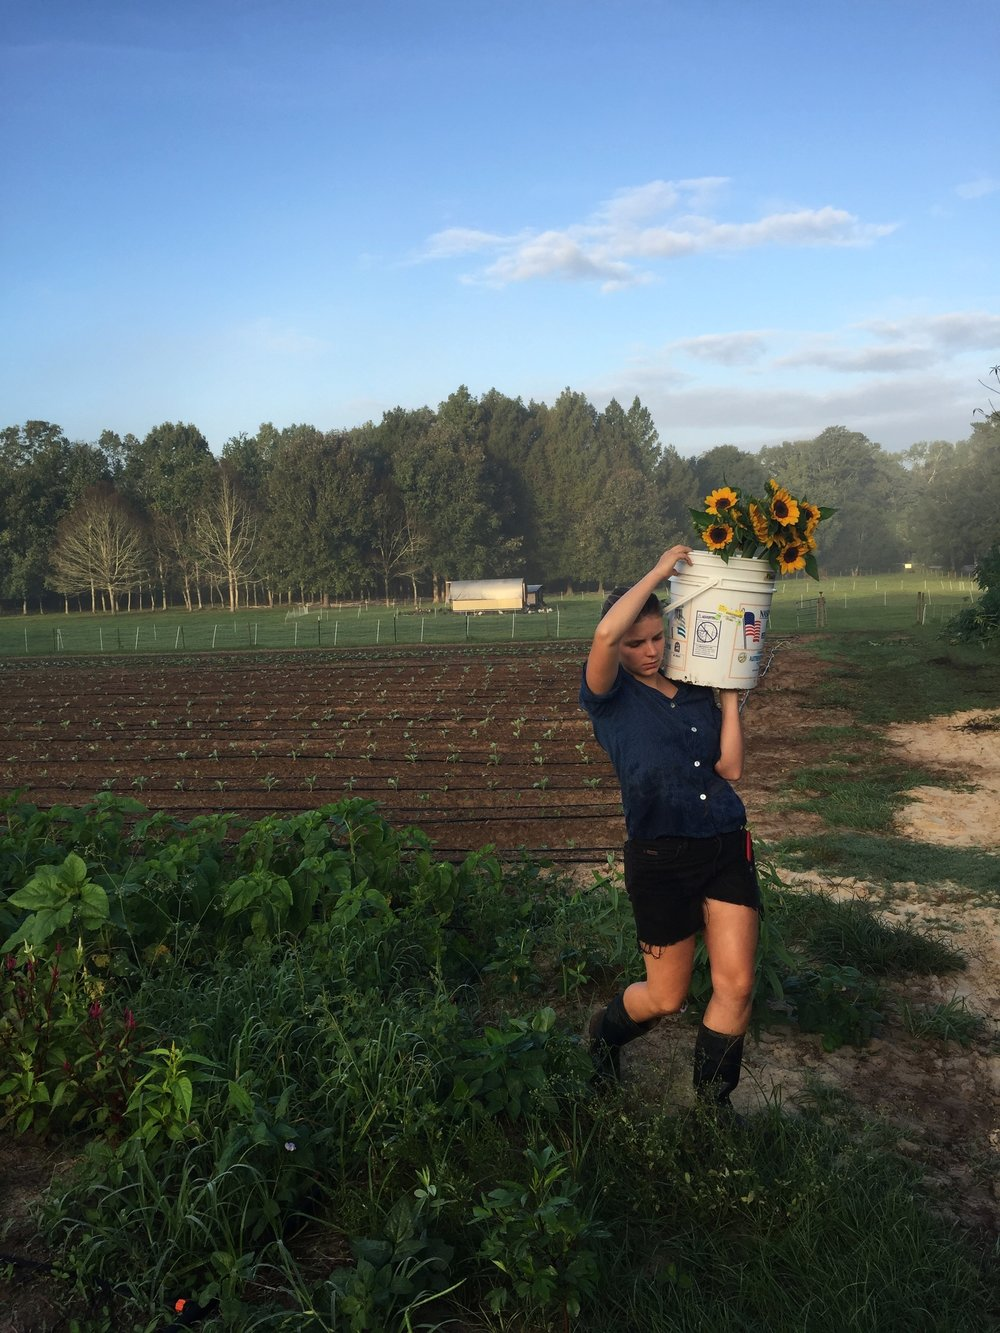 Emily harvesting sunflowers for market on a hot September day. Fall in Florida is much like its summers - hot, humid, and on the verge of rain.